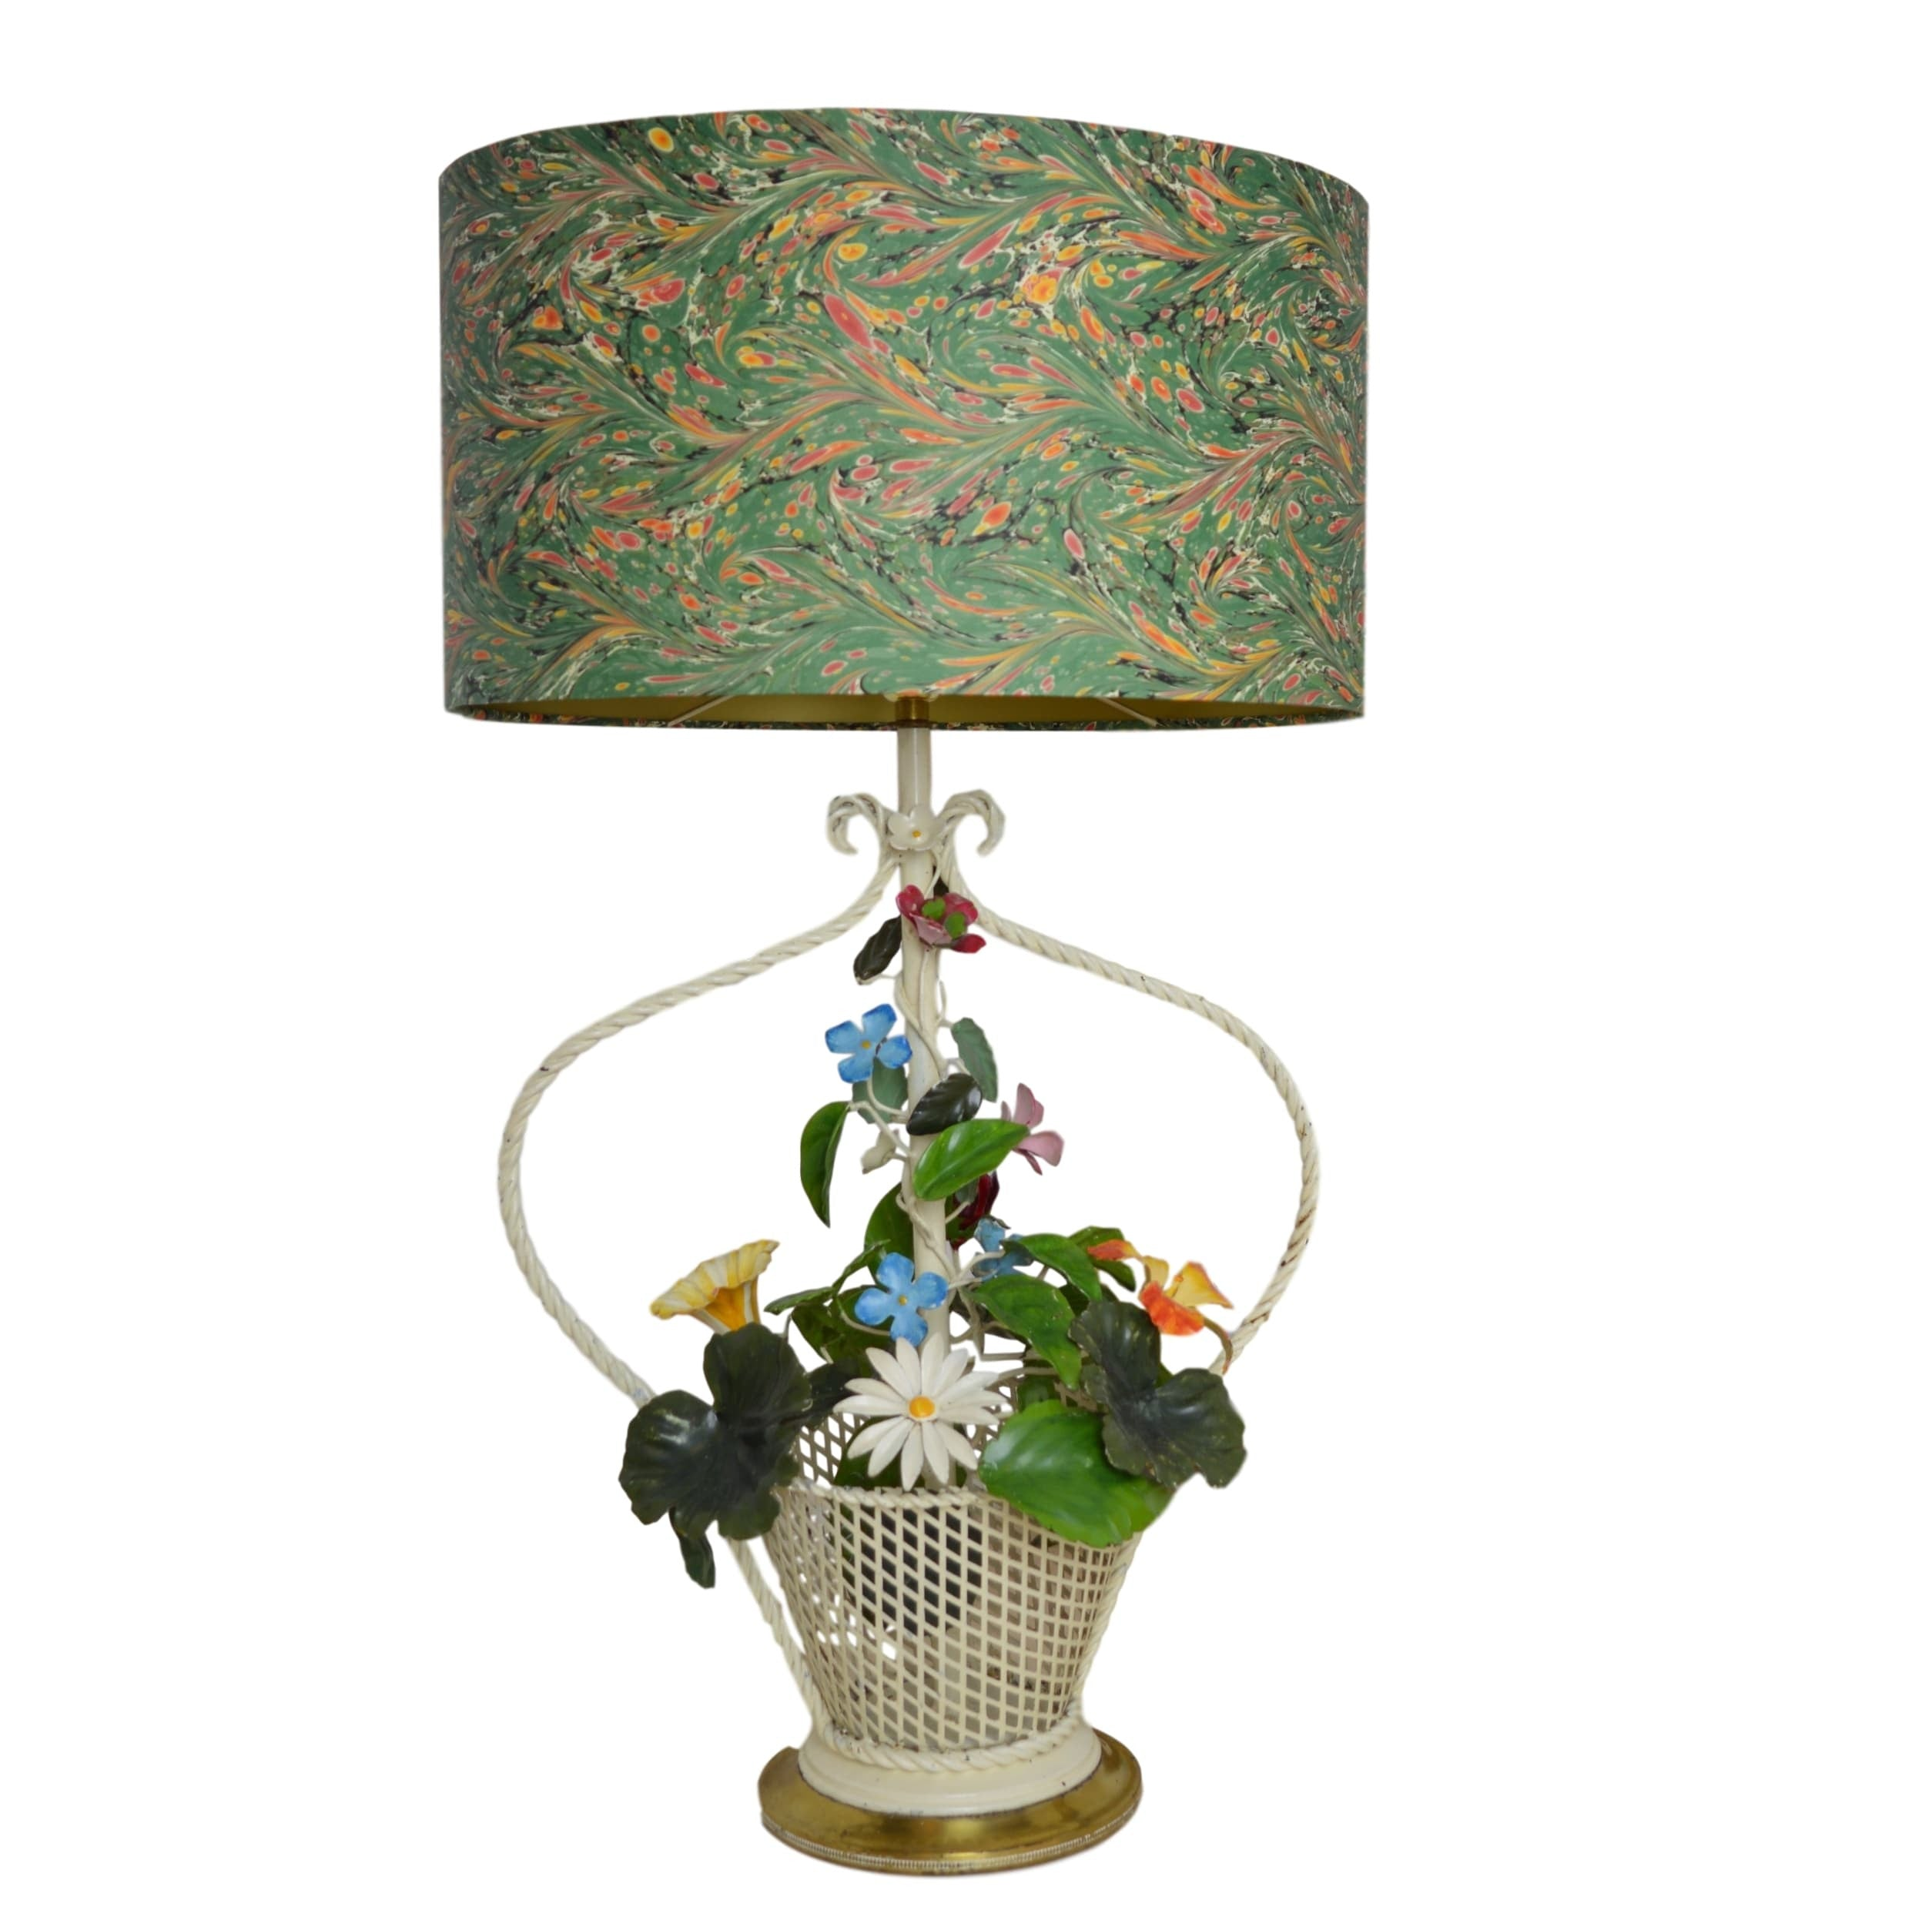 Munro and Kerr Vintage painted tole metal lamp base with marbled paper lampshade in the shape of a woven basket with flowers in. Roses, daisies, leaves, hybiscus.